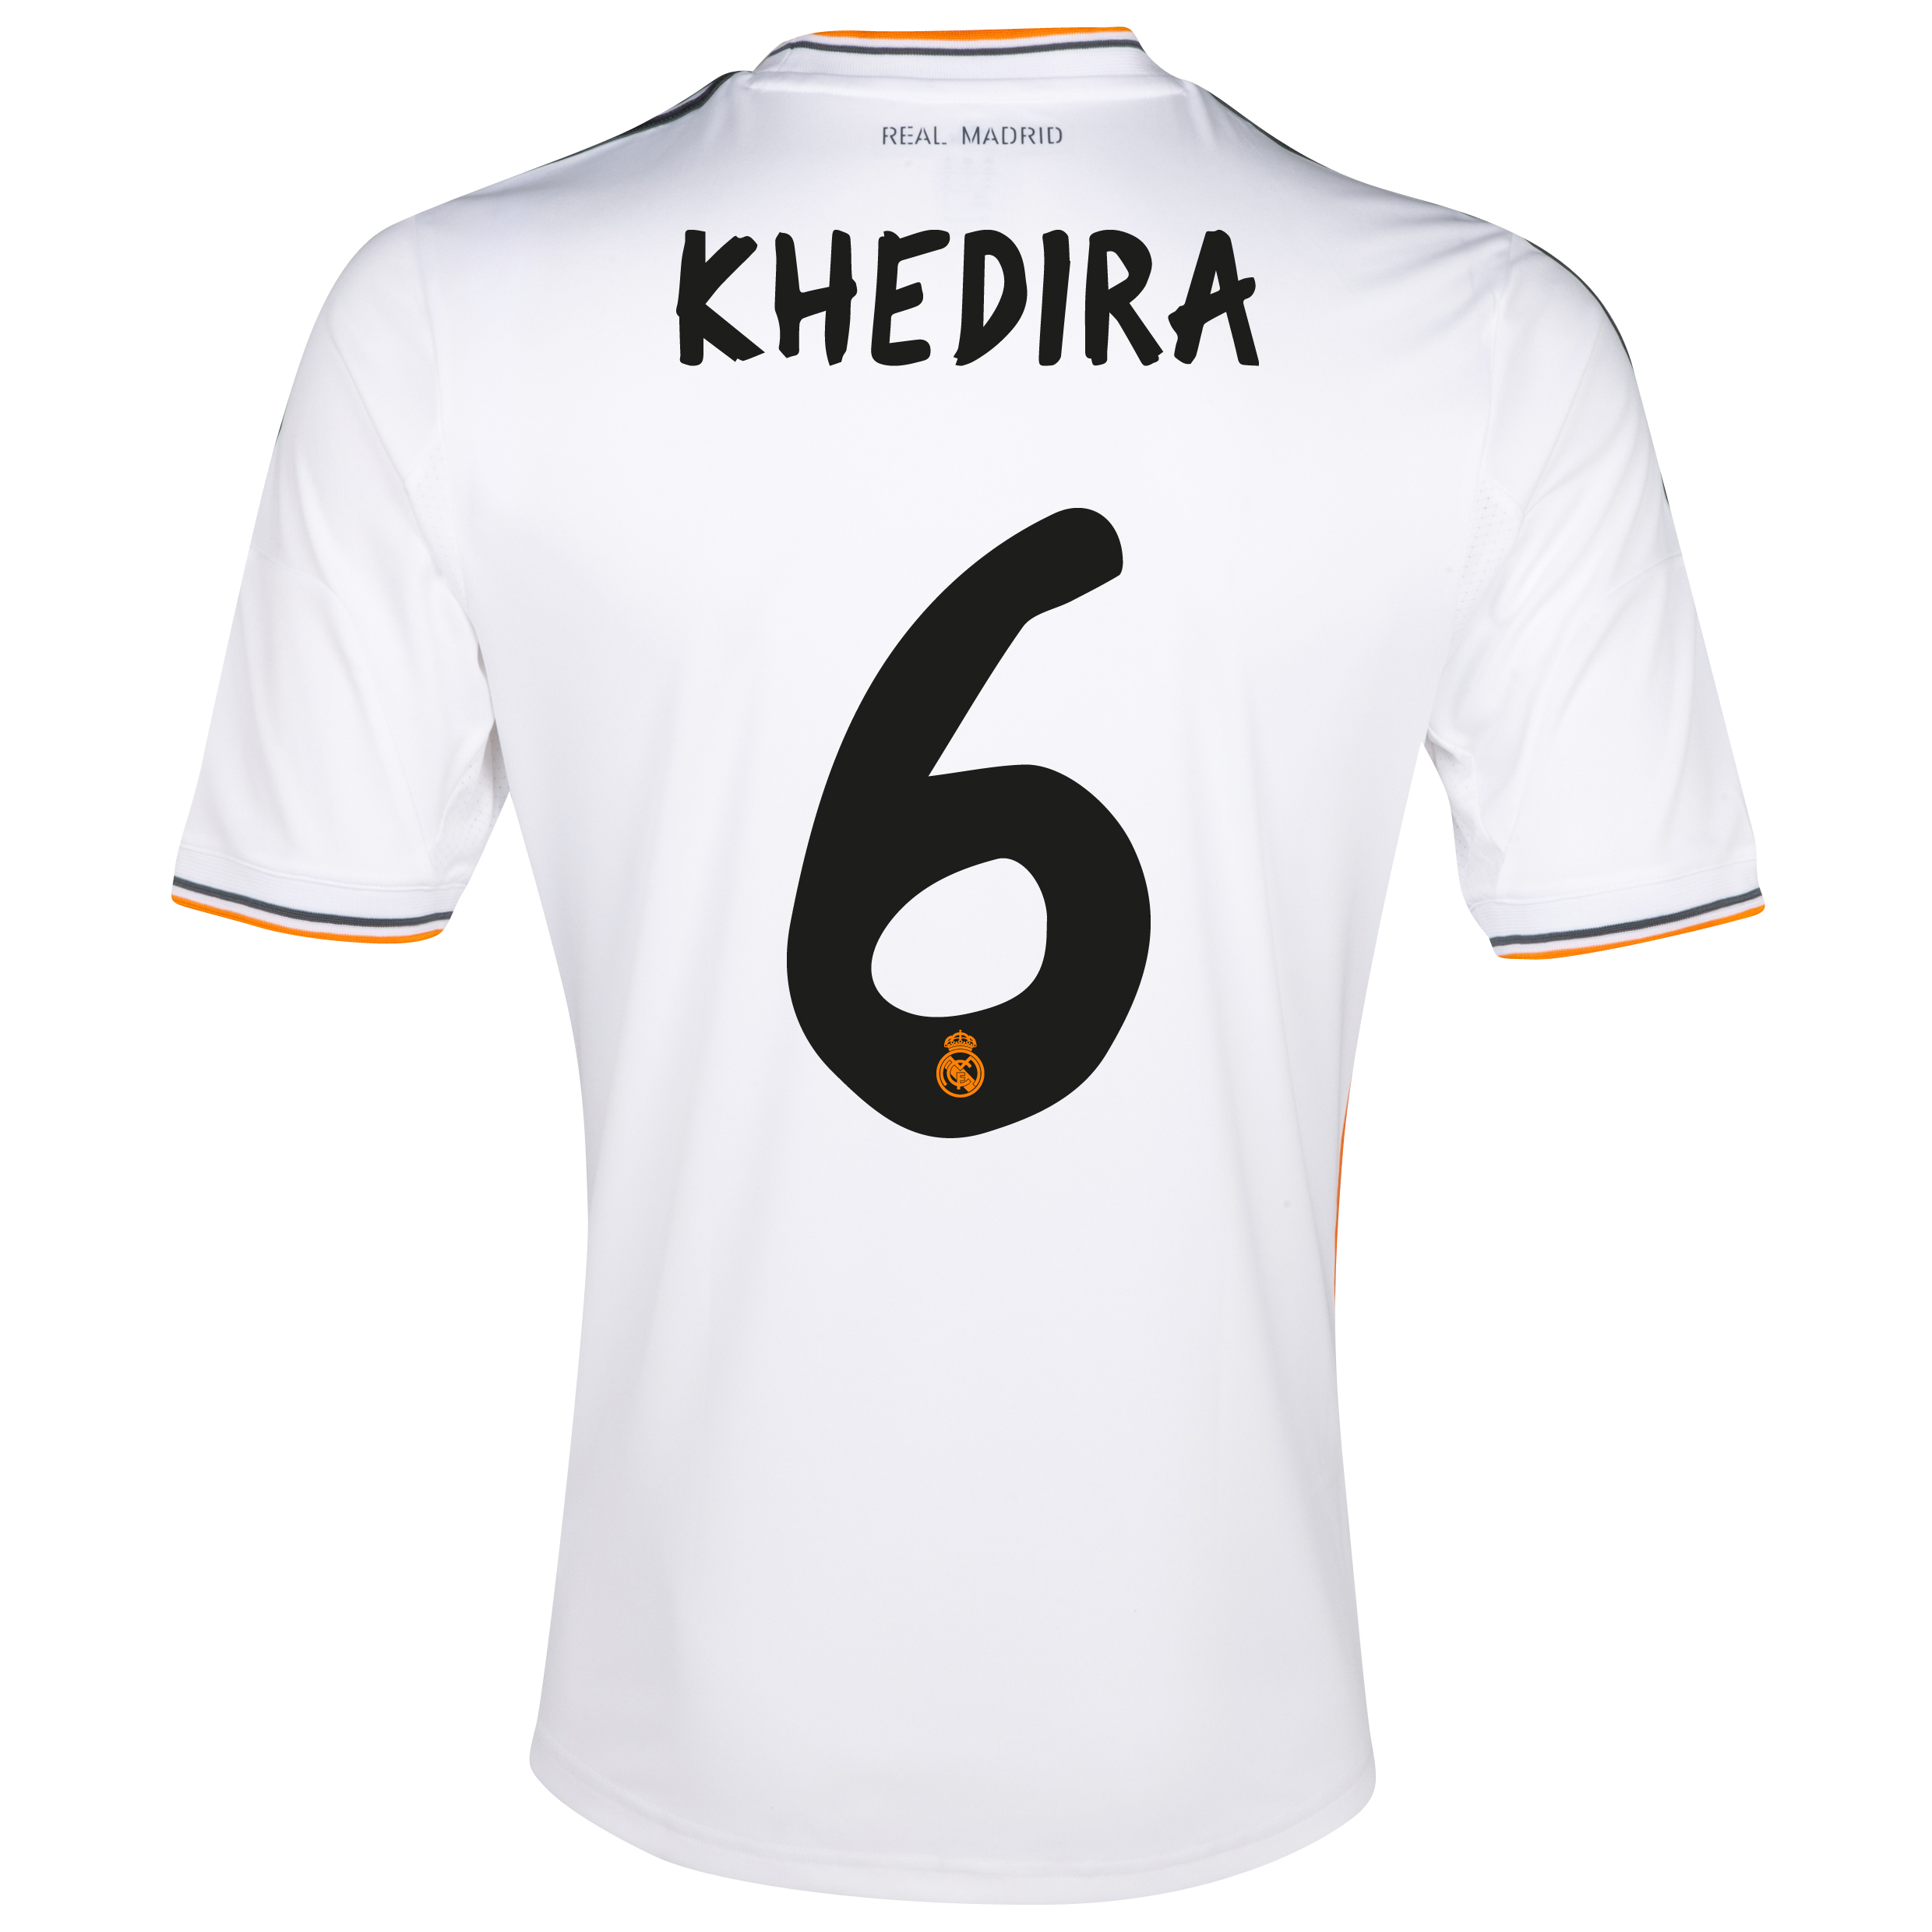 Real Madrid Home Shirt 2013/14 - Kids with Khedira 6 printing